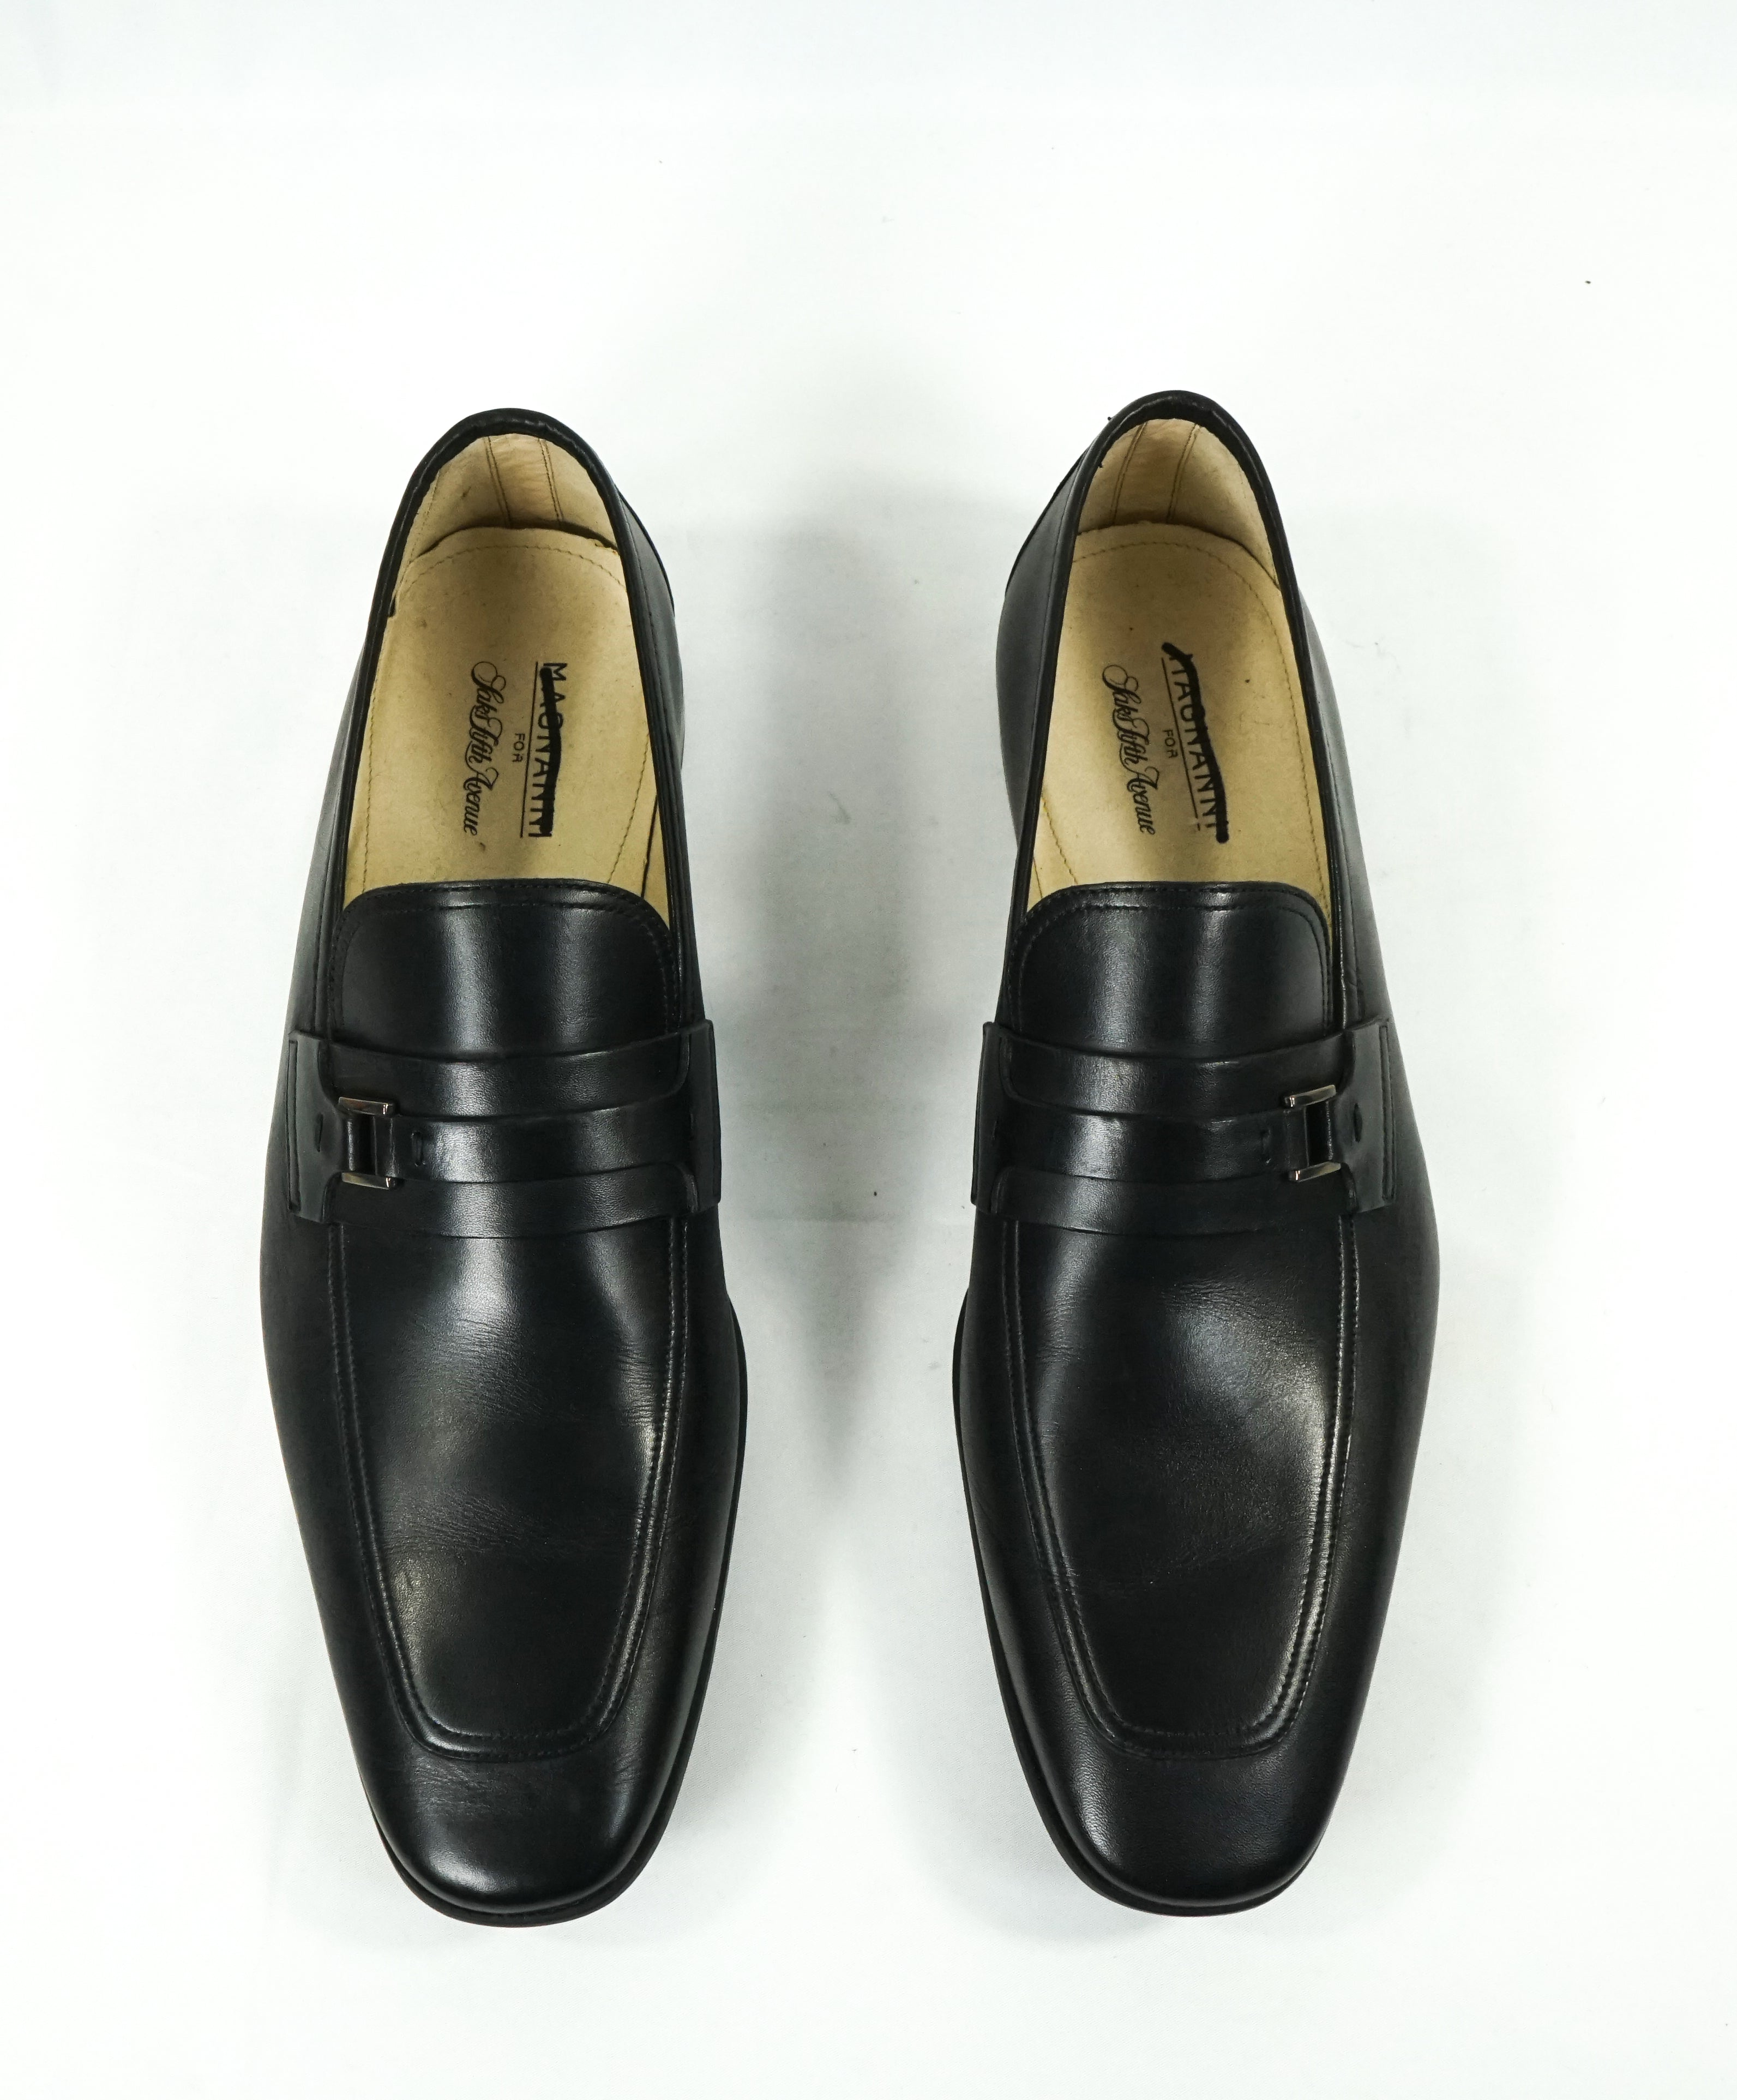 MAGNANNI - Smooth Black Bit Leather Loafers W Rubber Sole - 9.5